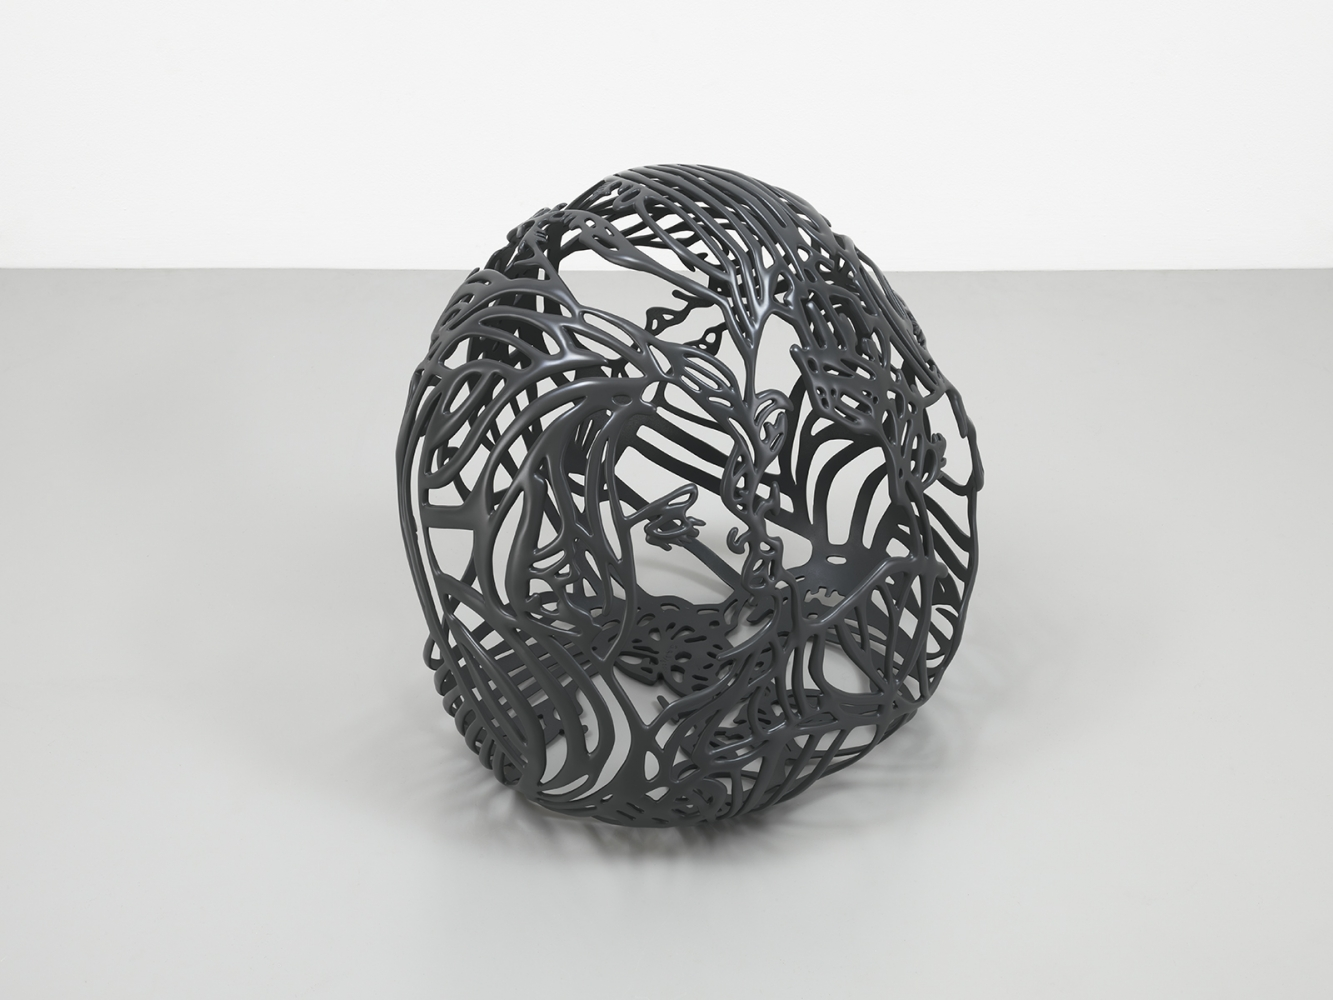 Baisers 1 by Ghada Amer, 2011-12, Black Painted bronze, Sculpture, Tina Kim Gallery